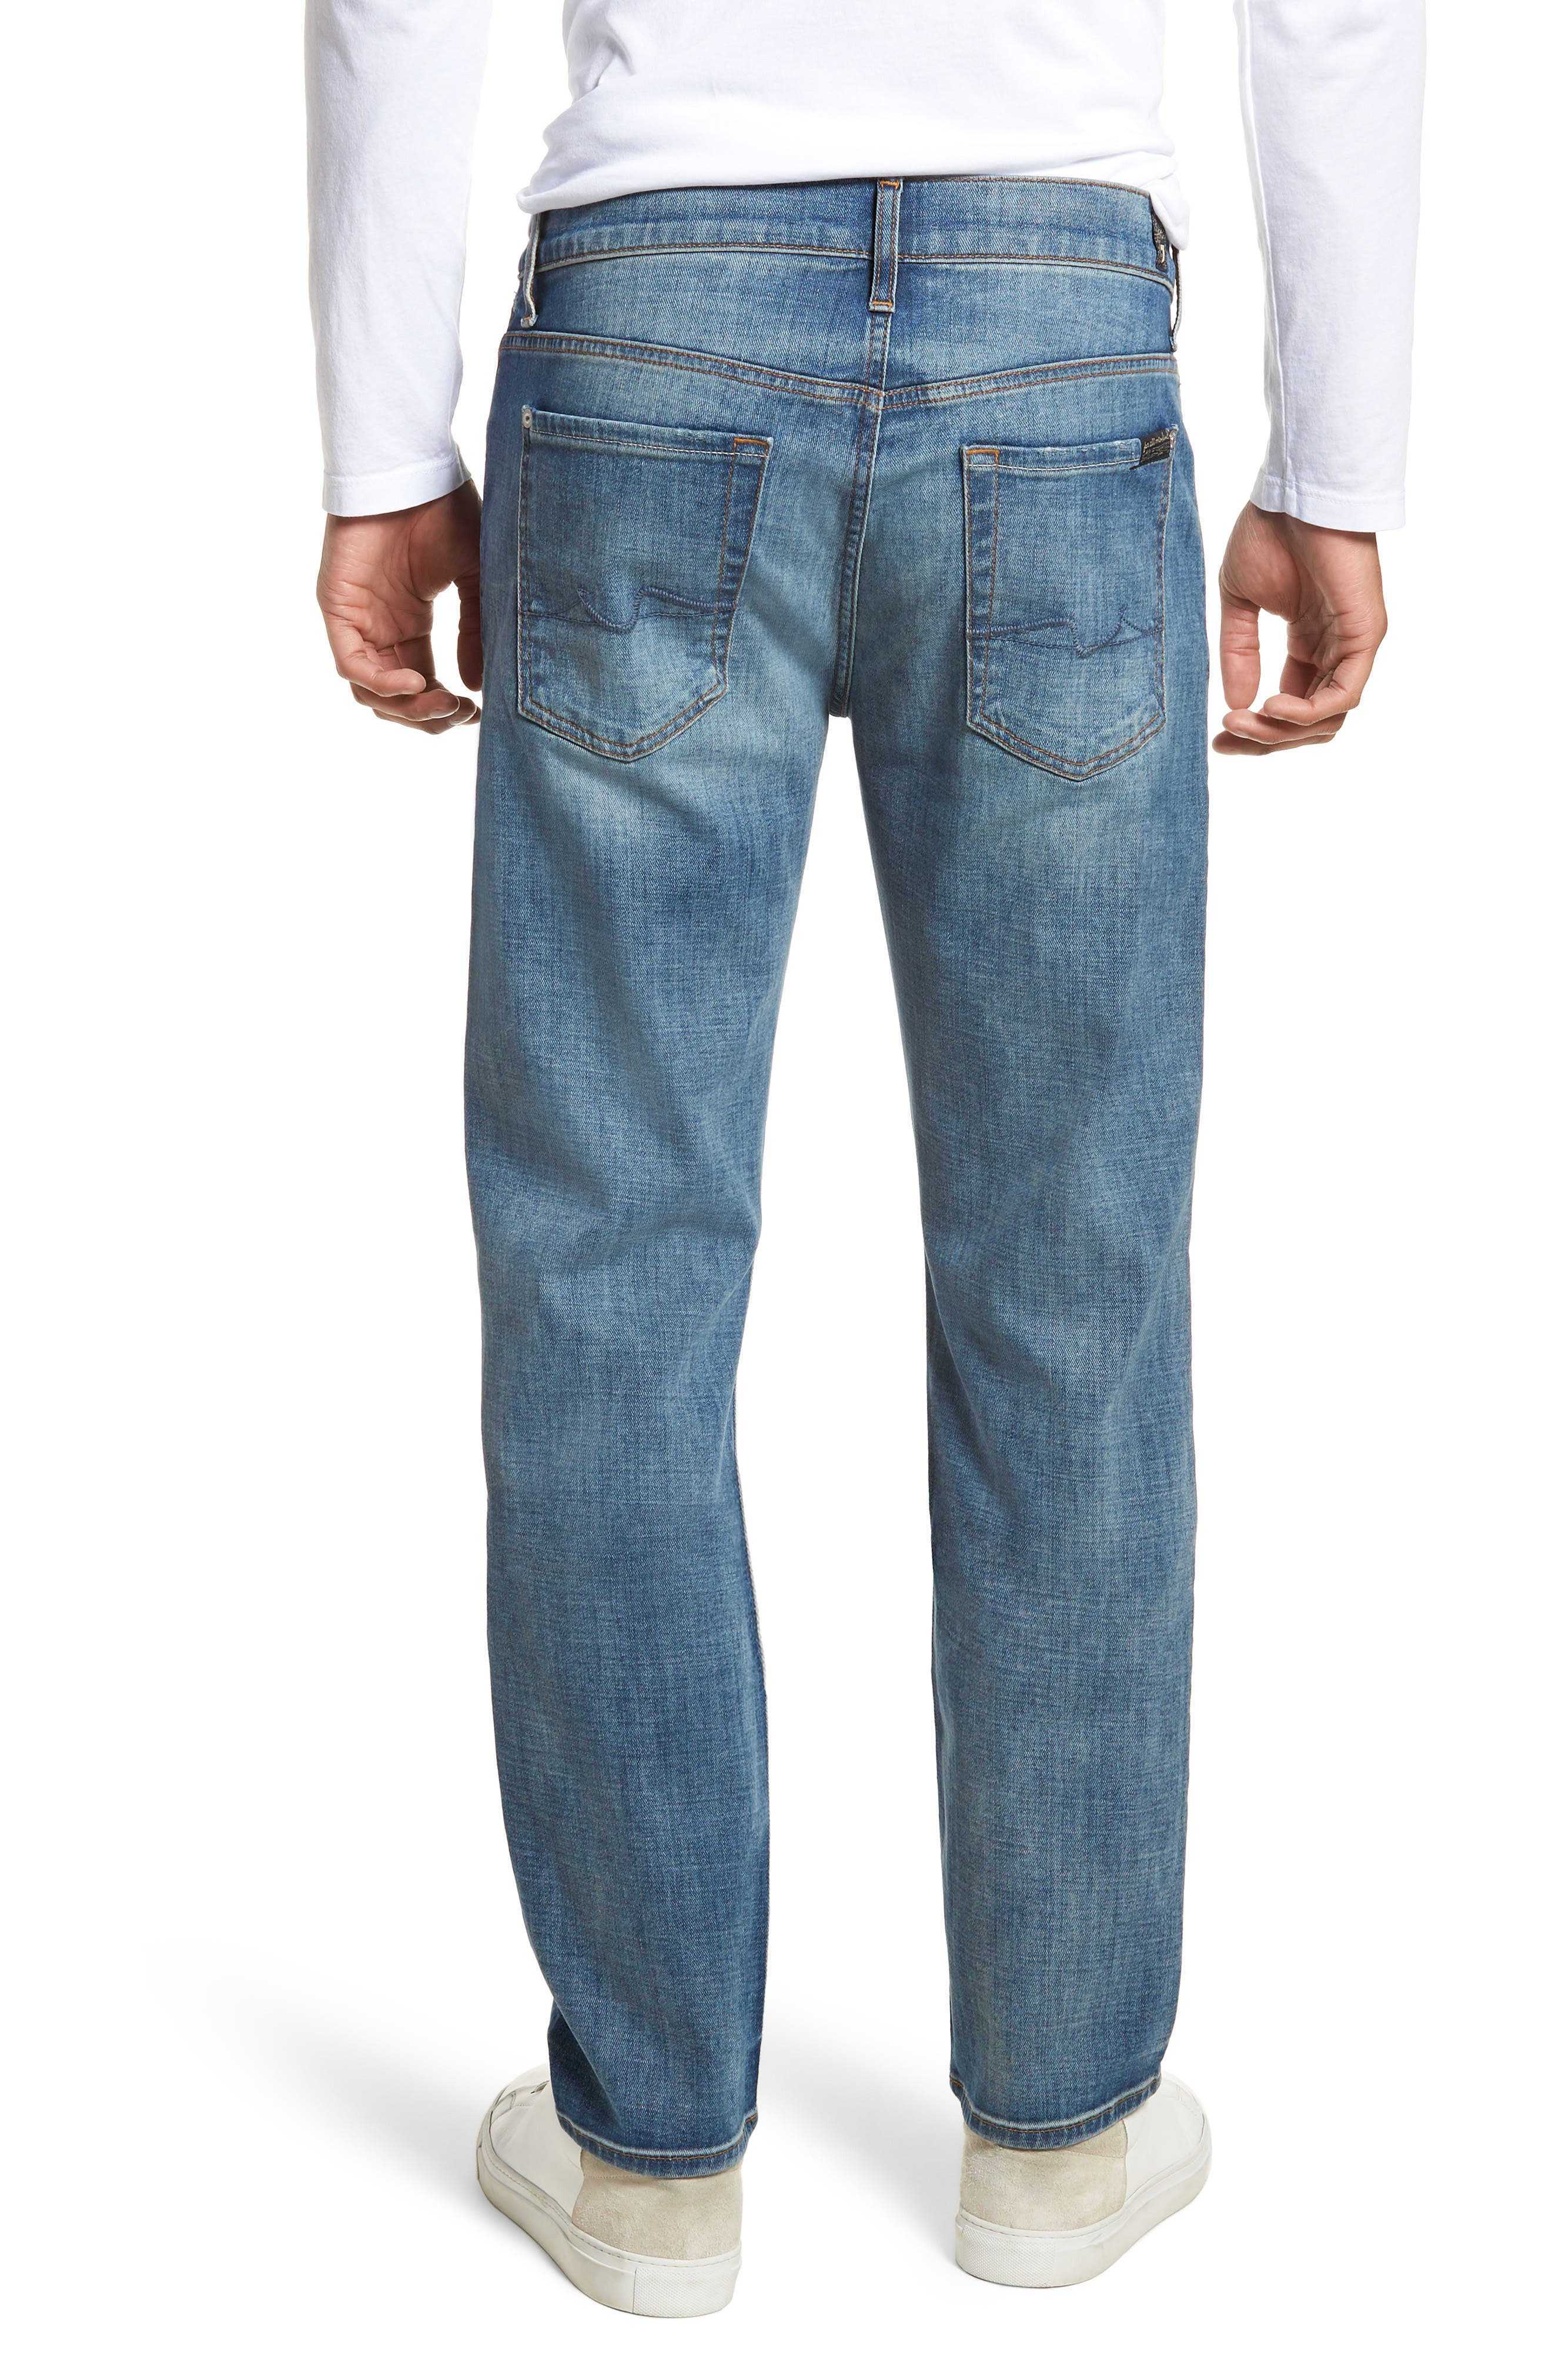 7 For All Mankind Slimmy Slim Fit Jeans,                             Alternate thumbnail 2, color,                             Desert Warrior